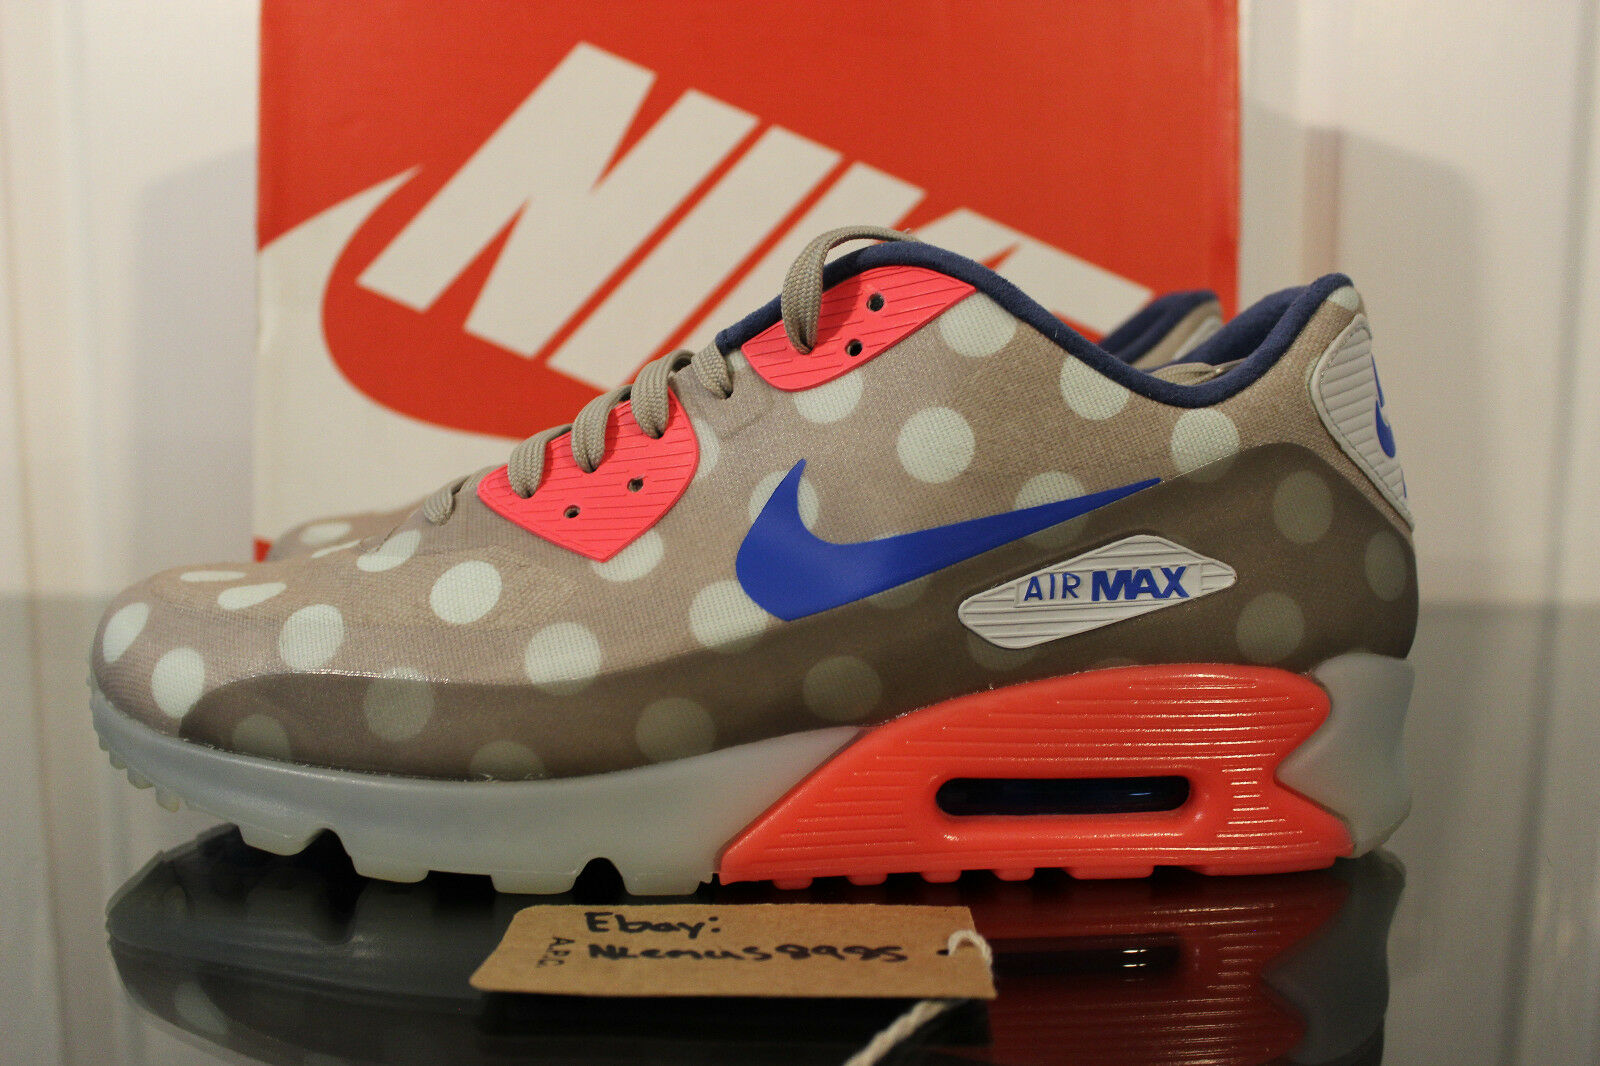 Rare Nike Air Max 90 Ice NYC Dots Punch Blue Rare Size 10.5 667635-001 OFF WHITE